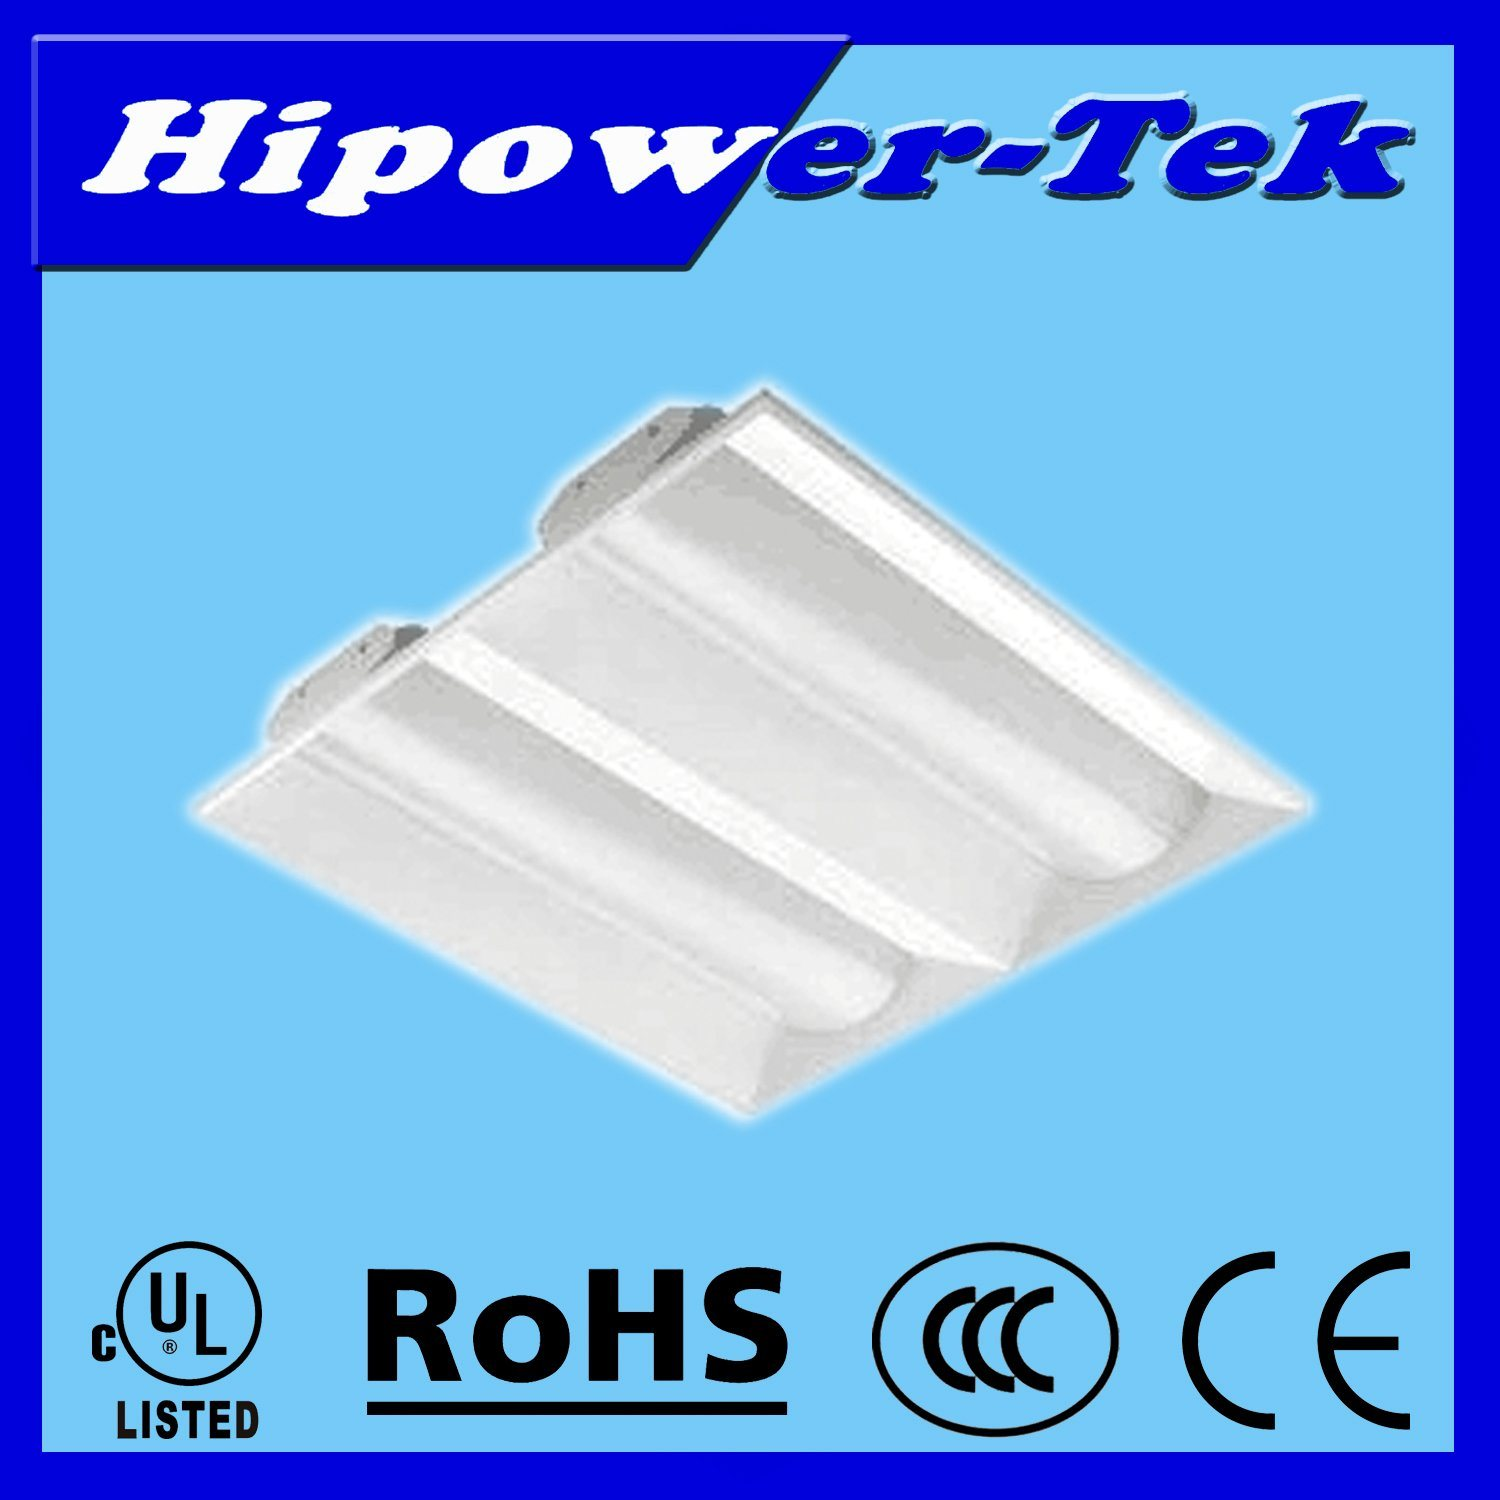 LED 2*2/2*4 Troffer Retrofit Kit